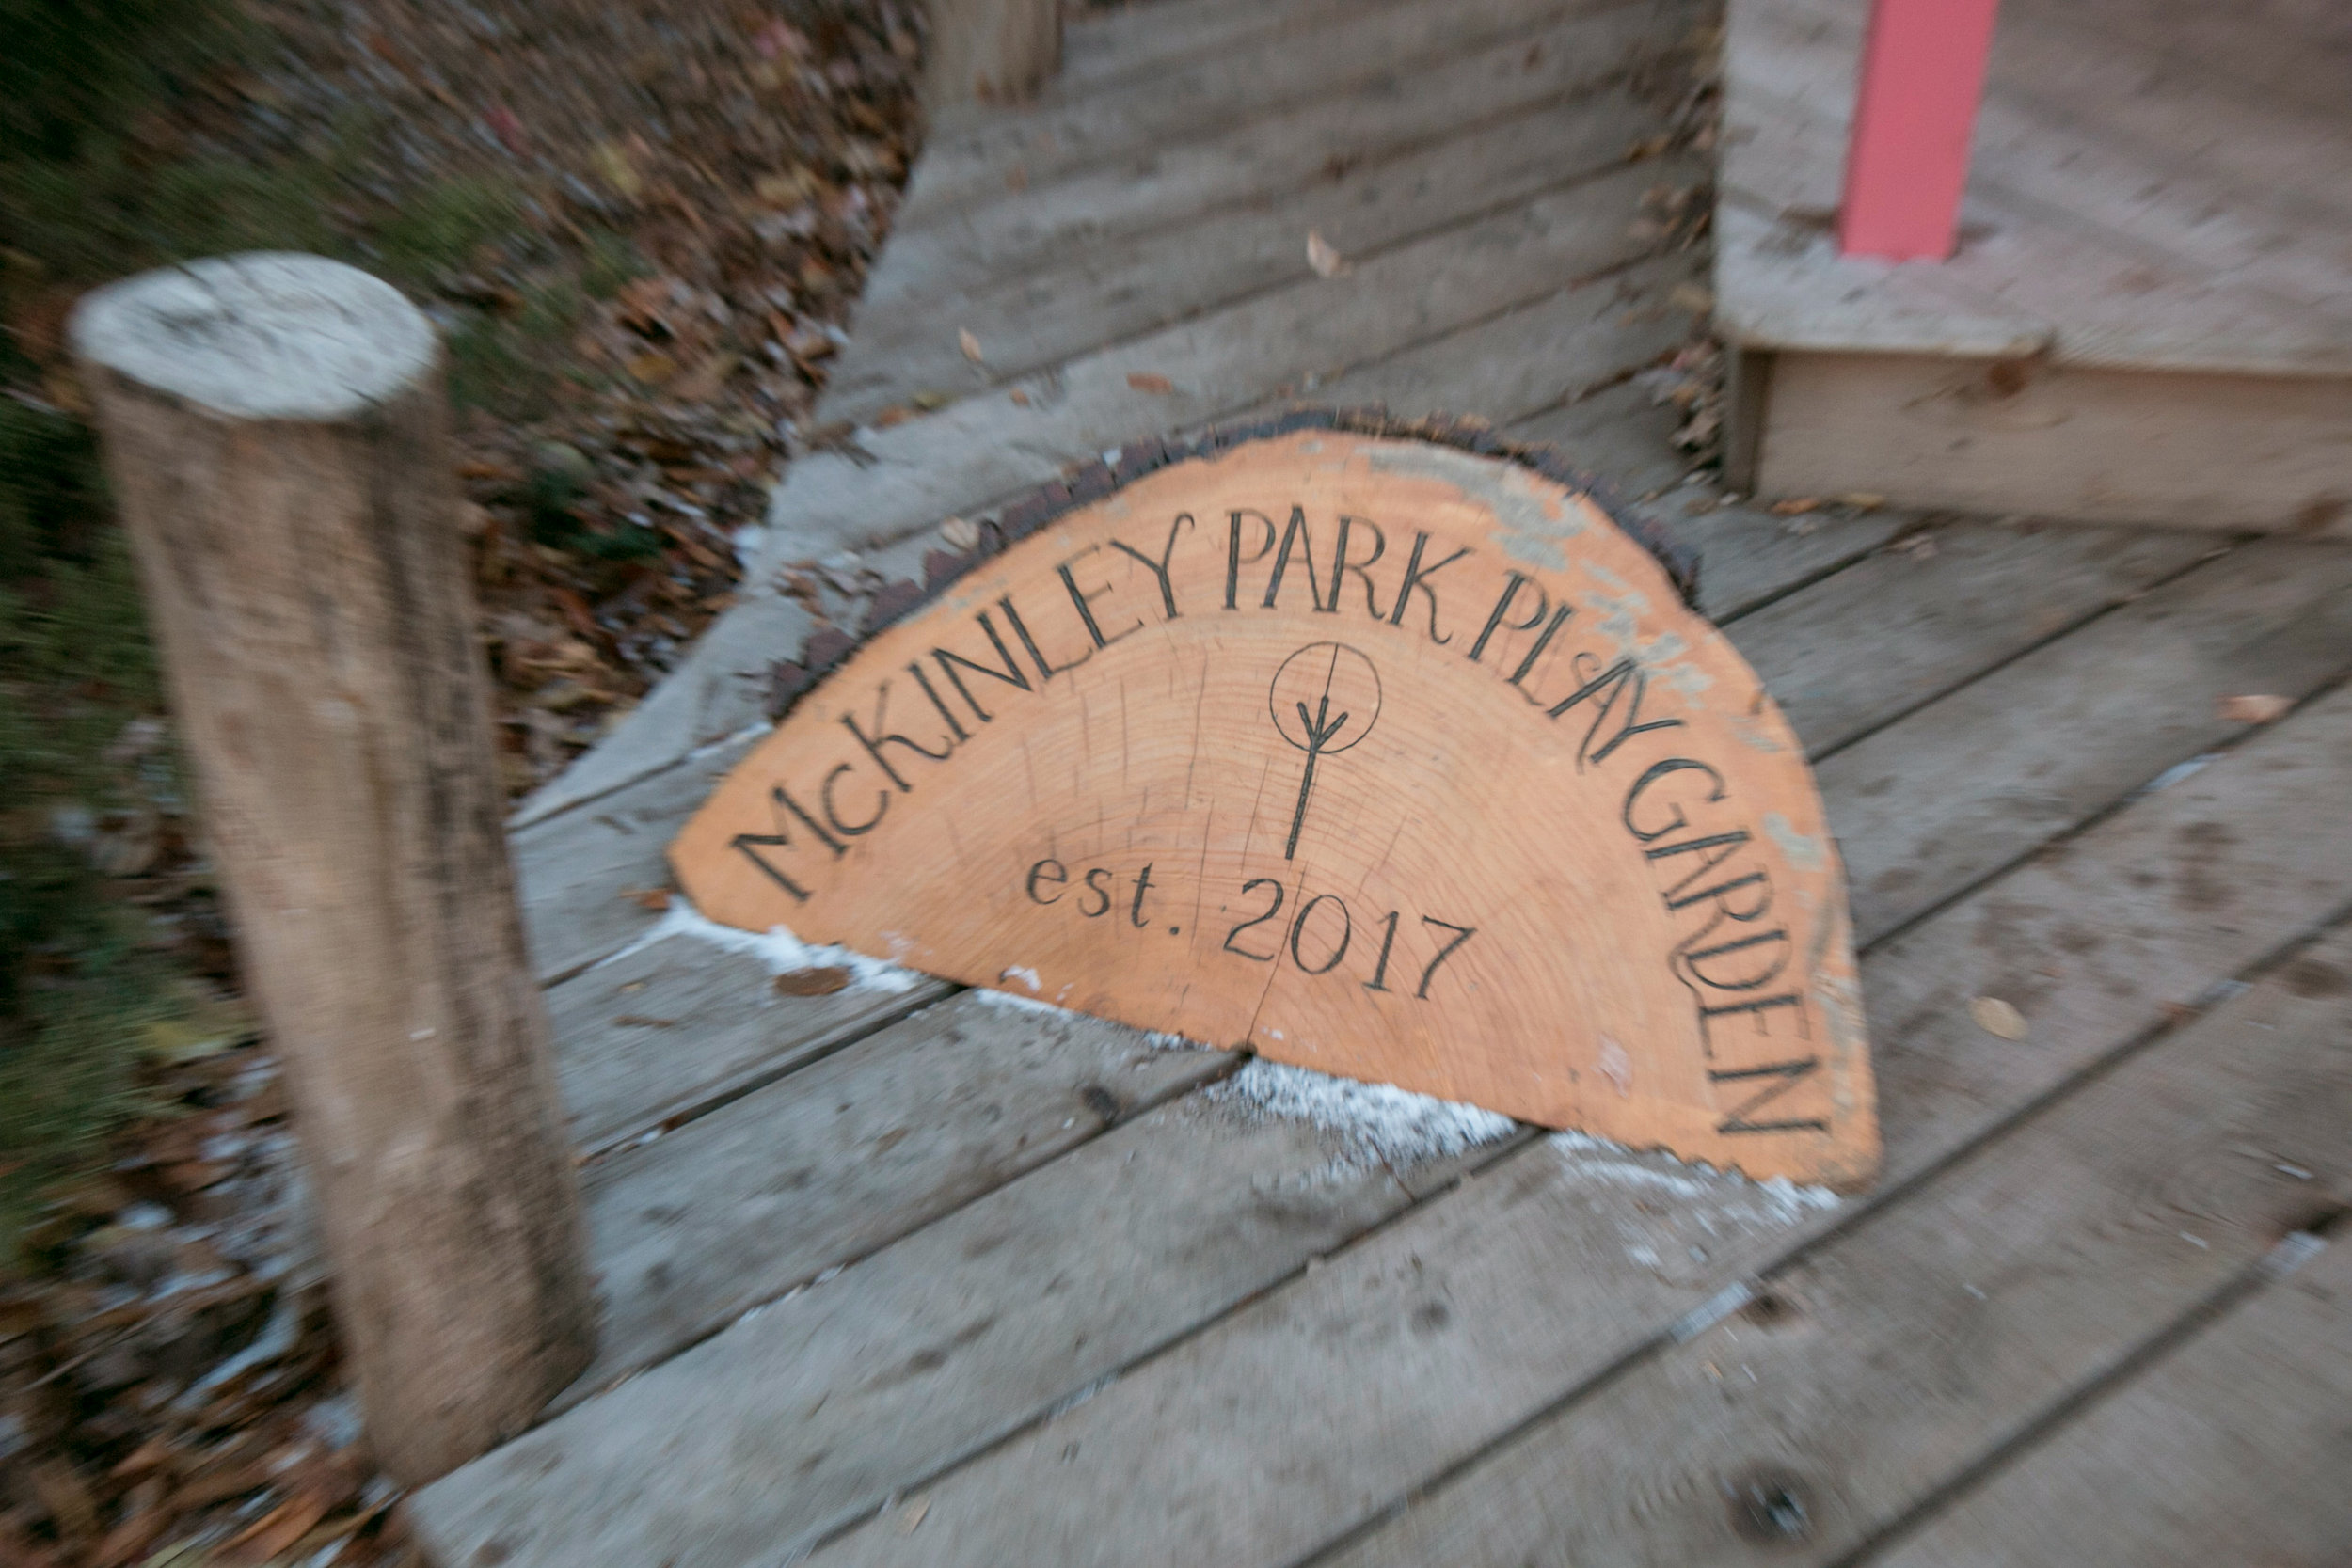 A tree trunk engraving marks the beginning of the McKinley Park Play Garden.